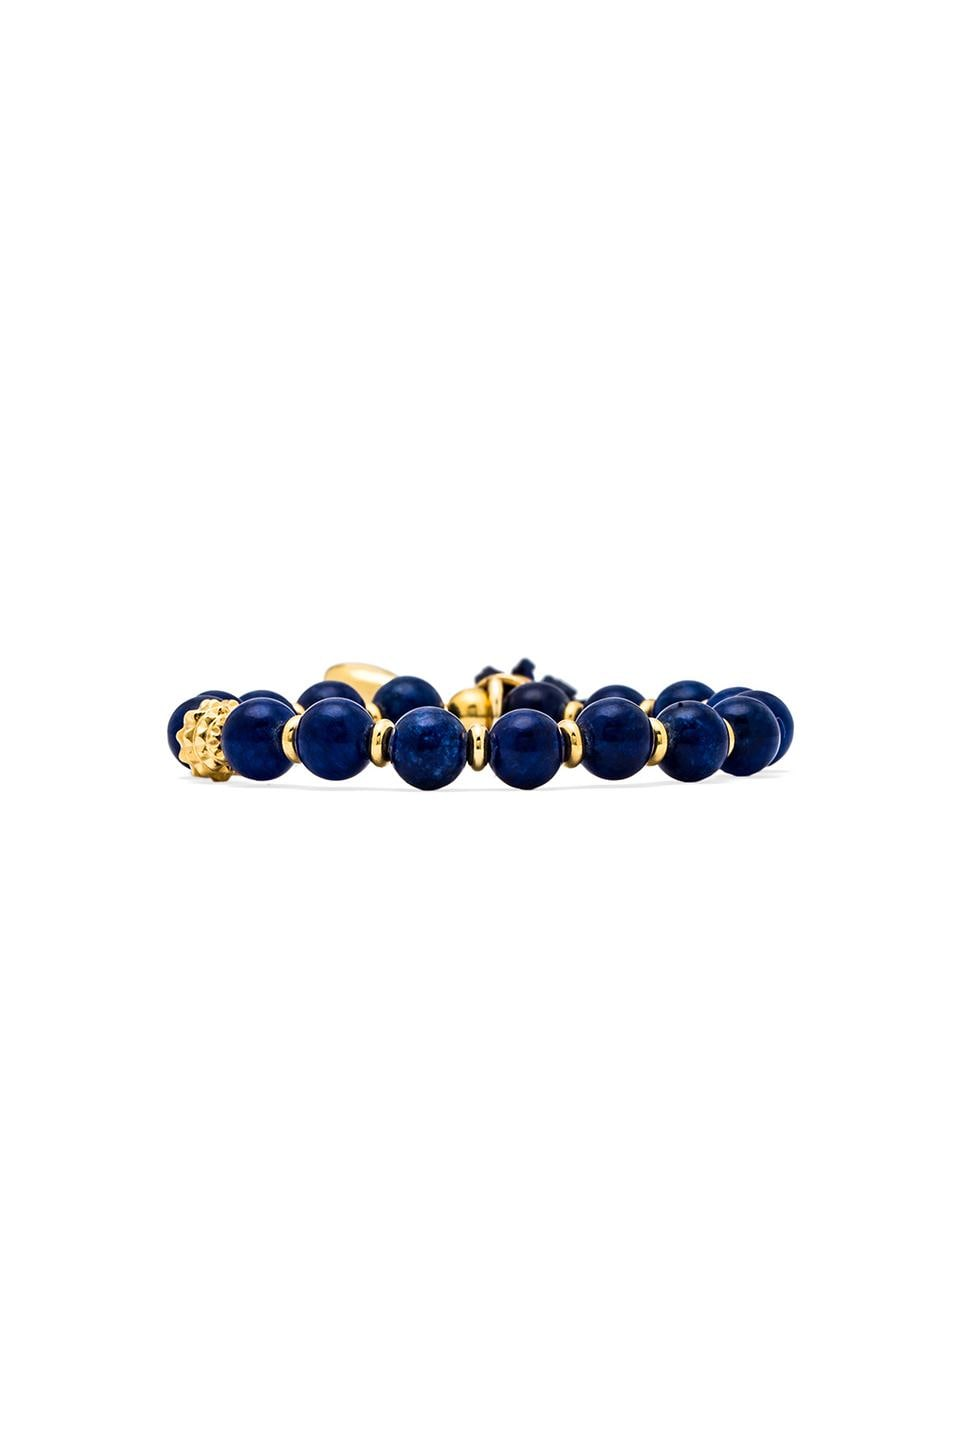 Ettika Beaded Bracelet with Seashell Tassle in Cobalt